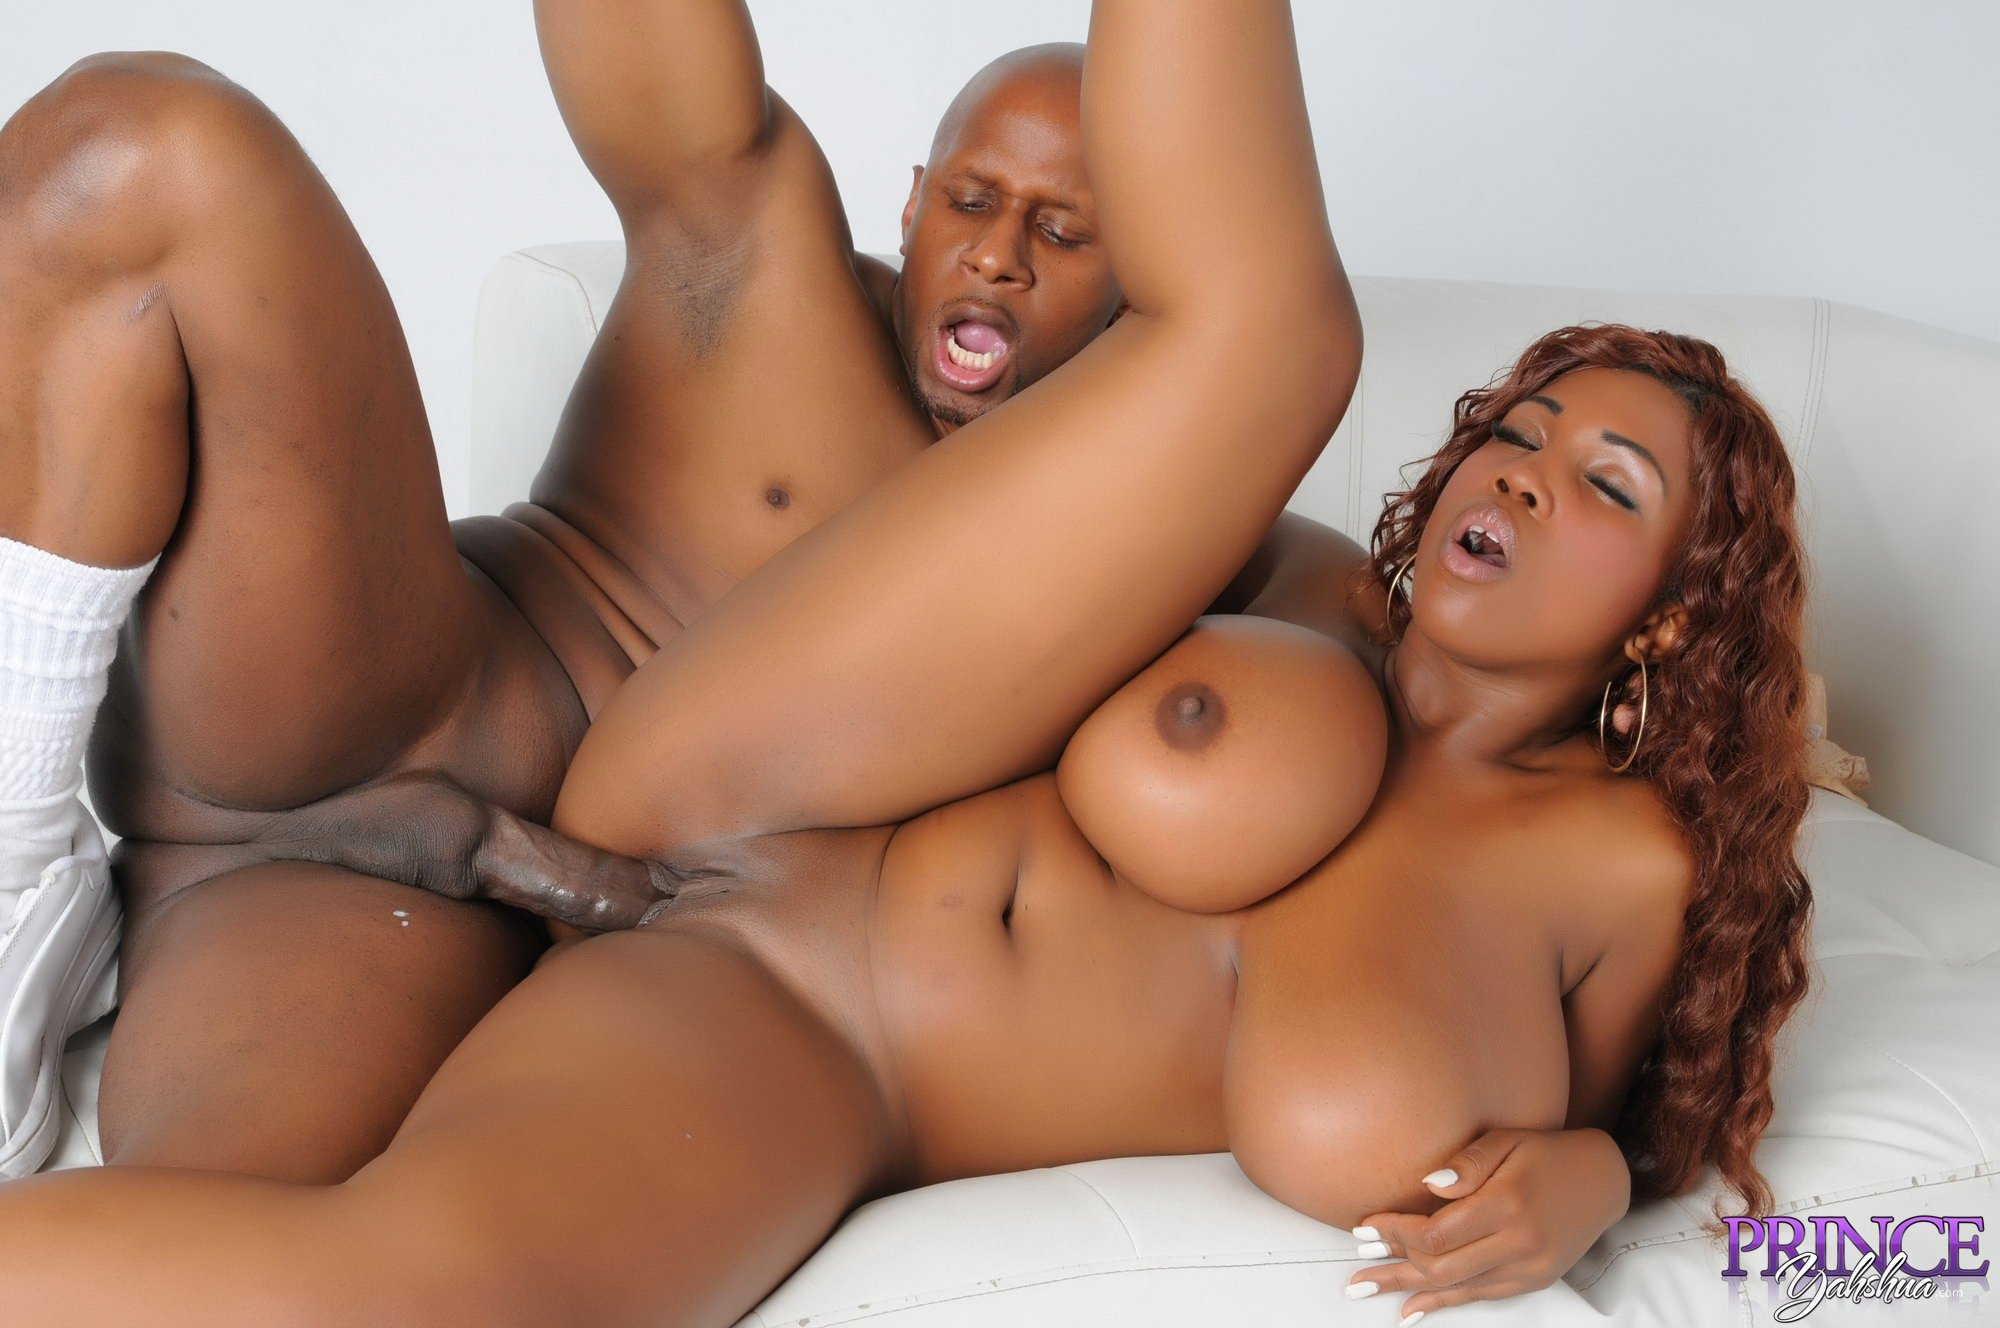 Black big tit porn stars, top slave sex video